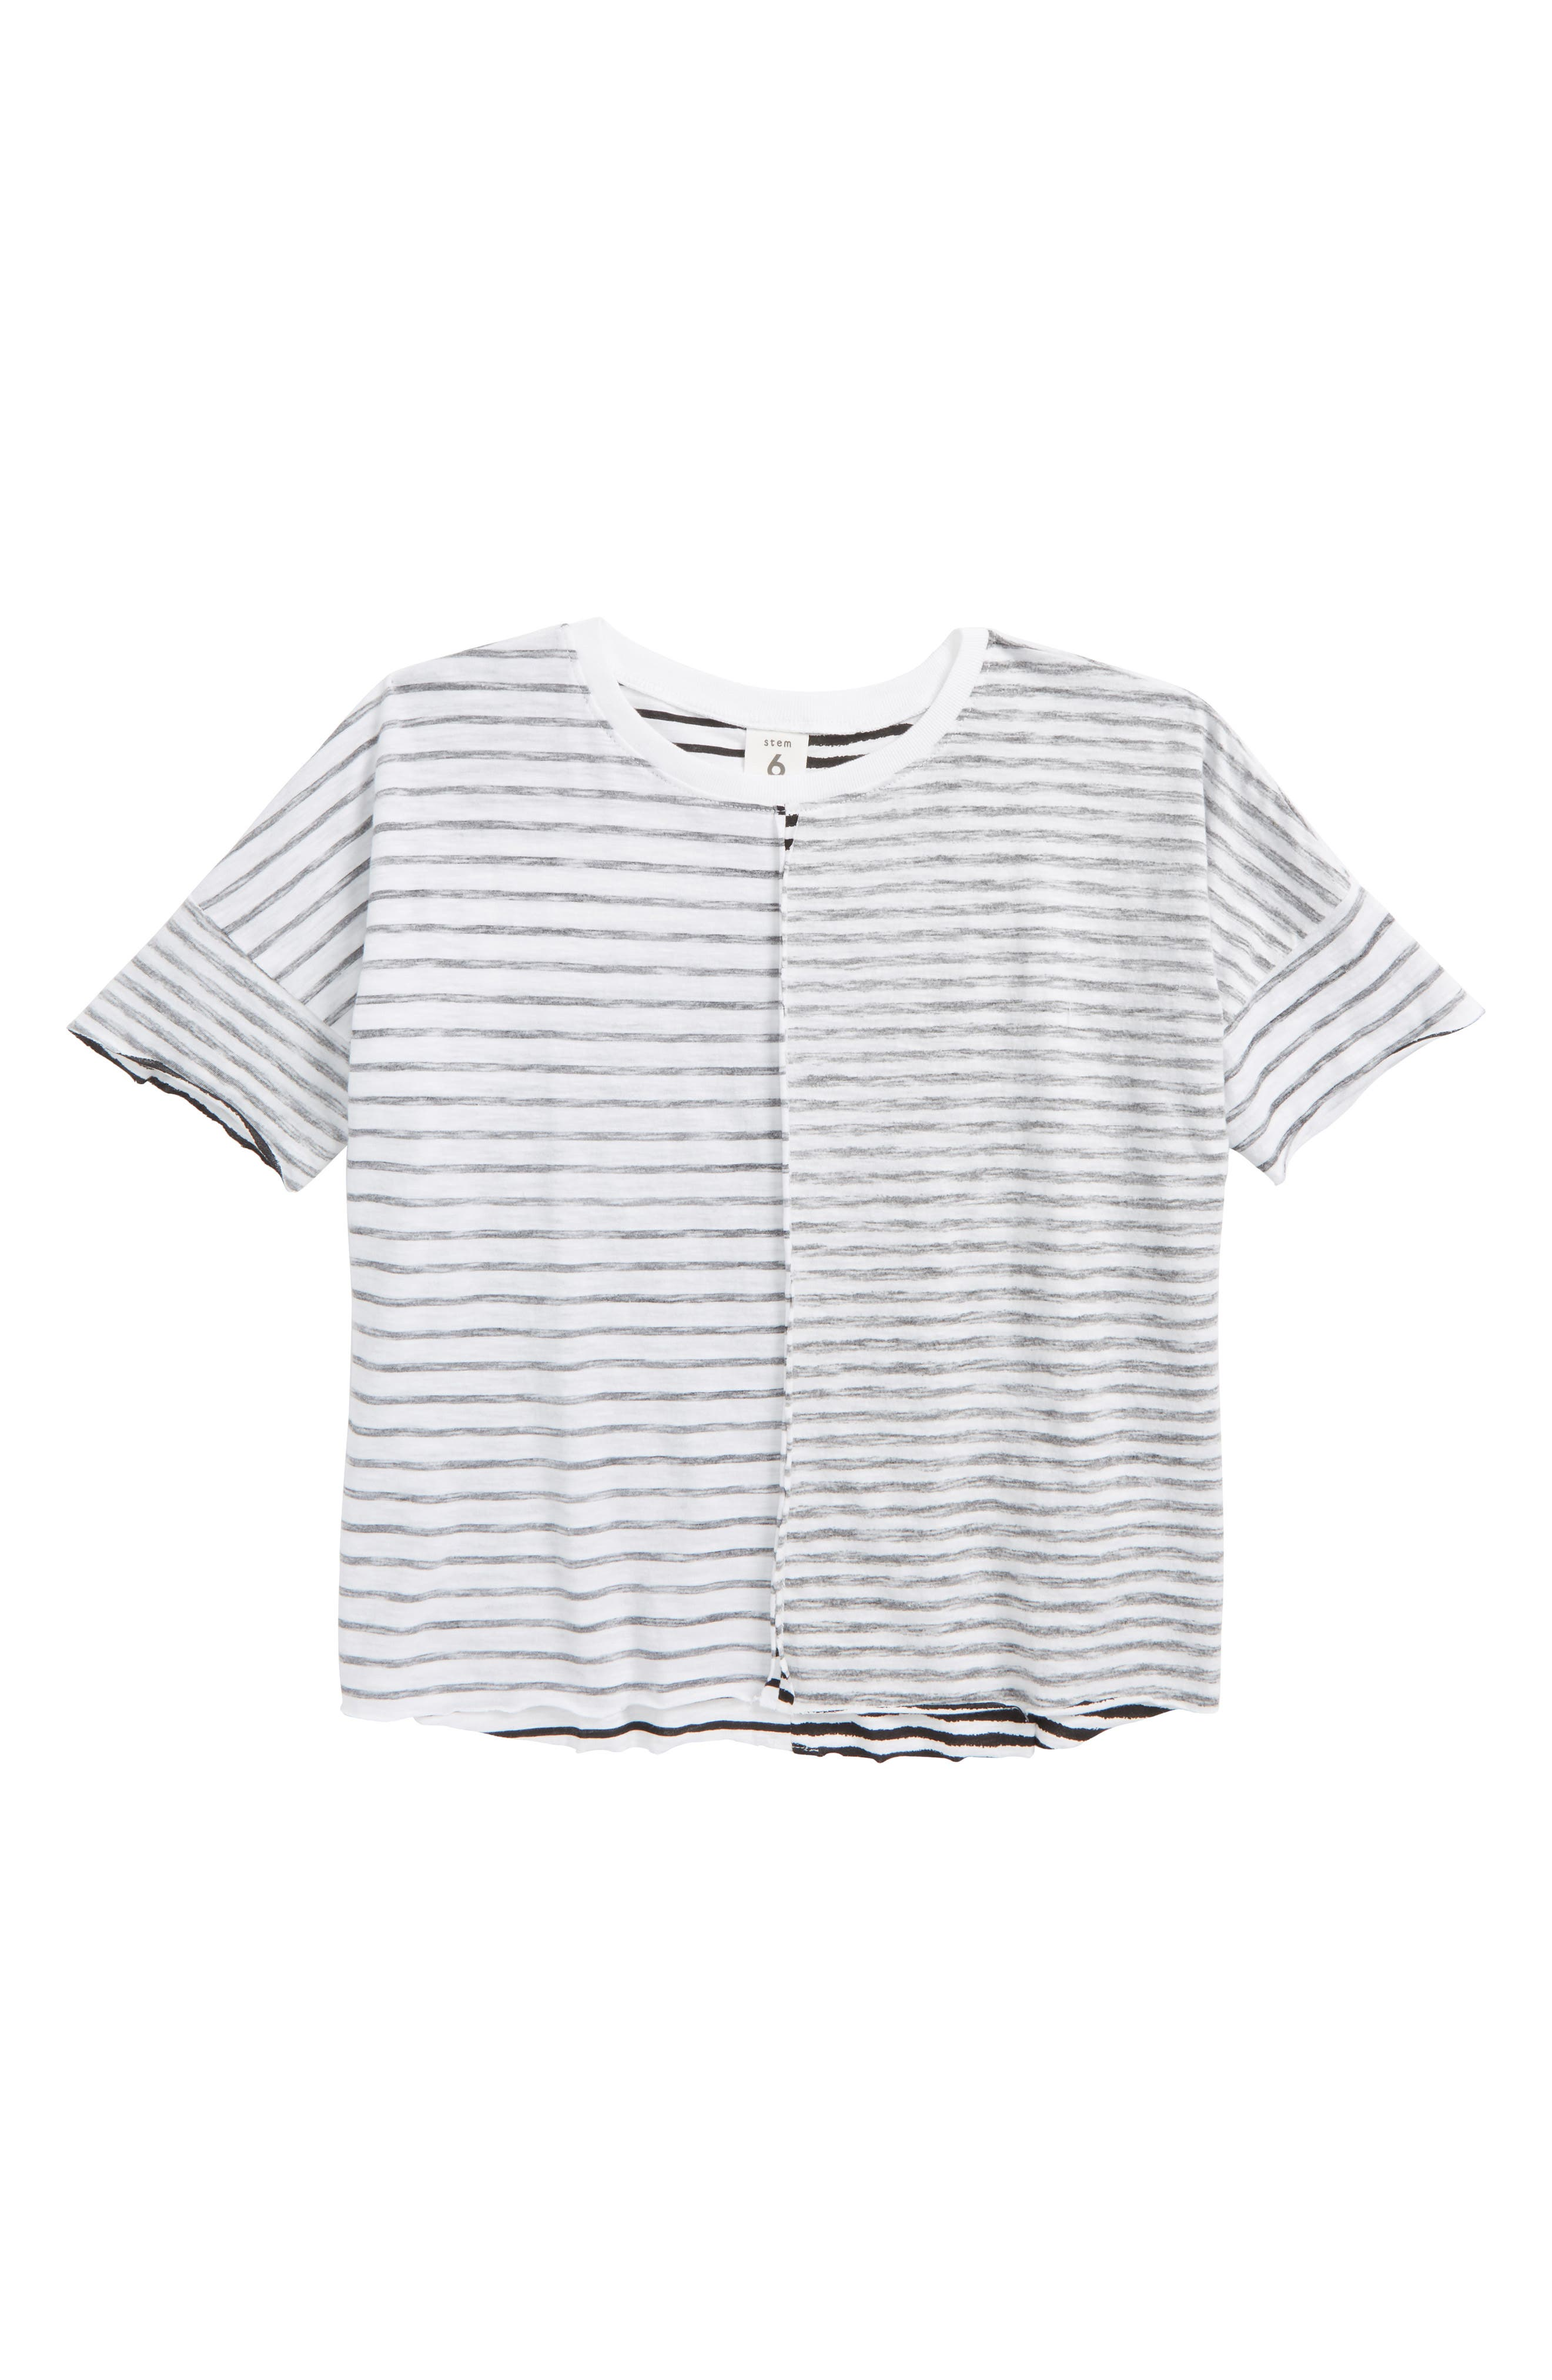 Split Stripe T-Shirt,                             Main thumbnail 1, color,                             100